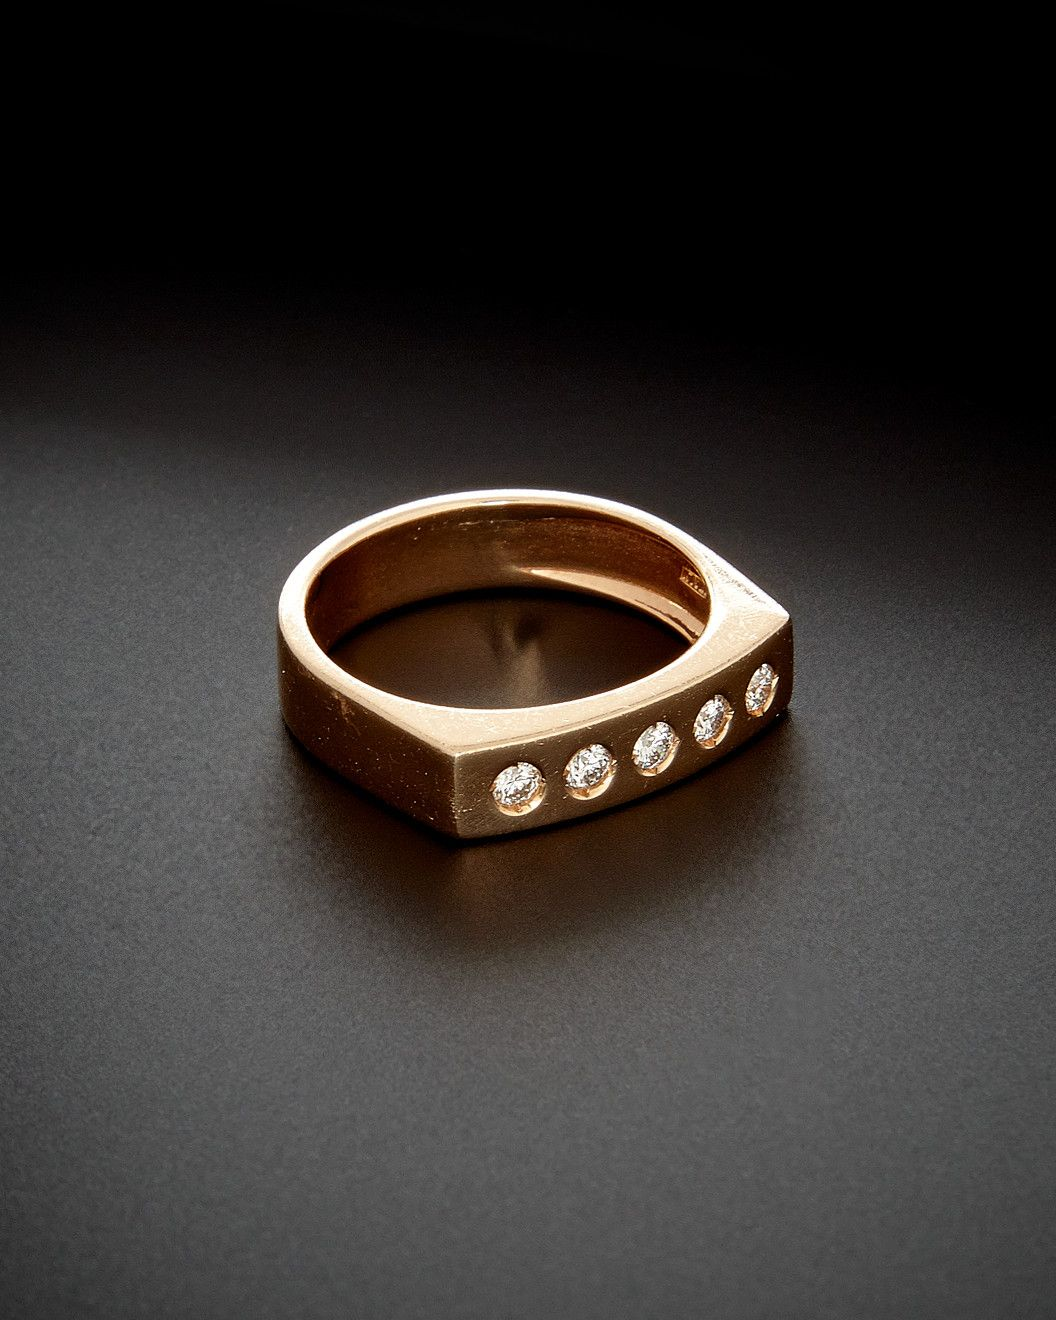 Spotted this 14K Italian Rose Gold 020 ct tw Diamond Bar Ring on